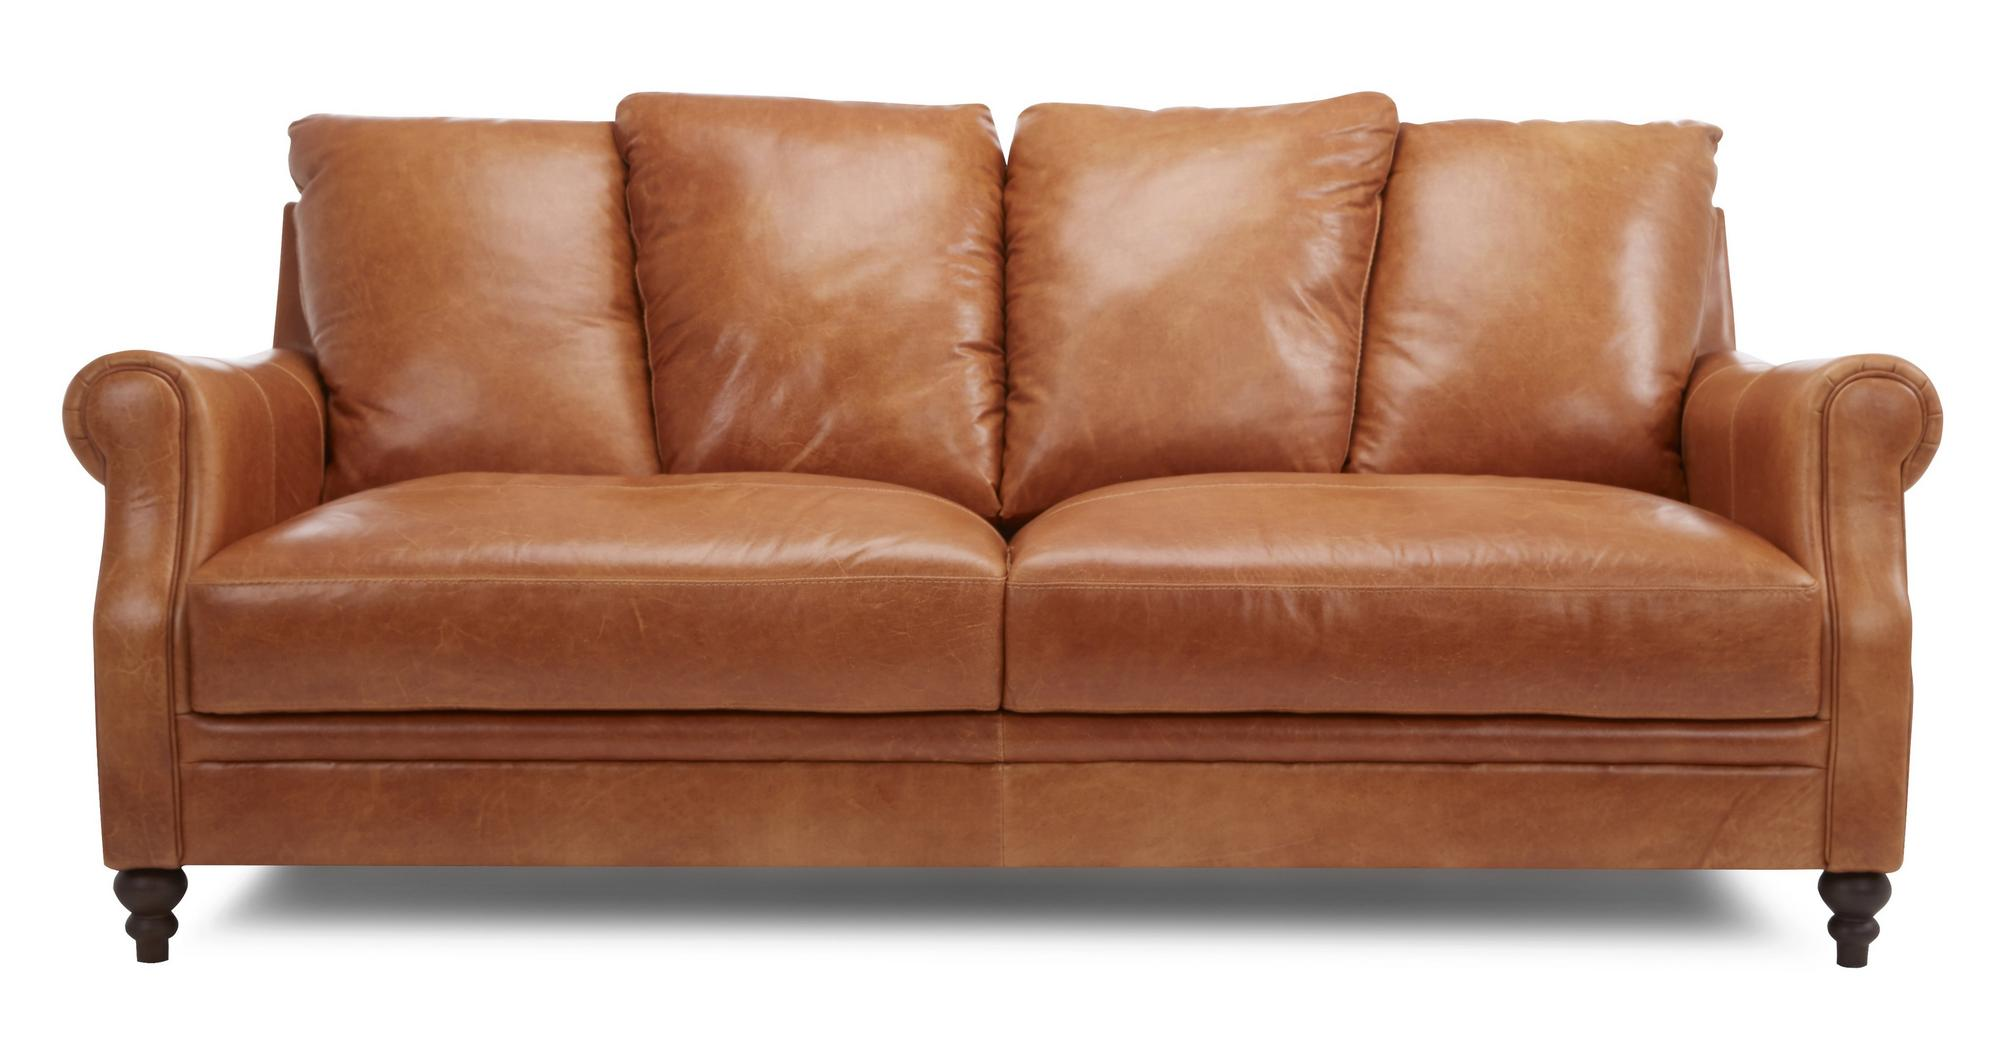 Leather Sofa Dfs Click To Zoom Leather Sofas Corner Sofas Sofa Beds Dfs Zinc Leather 4